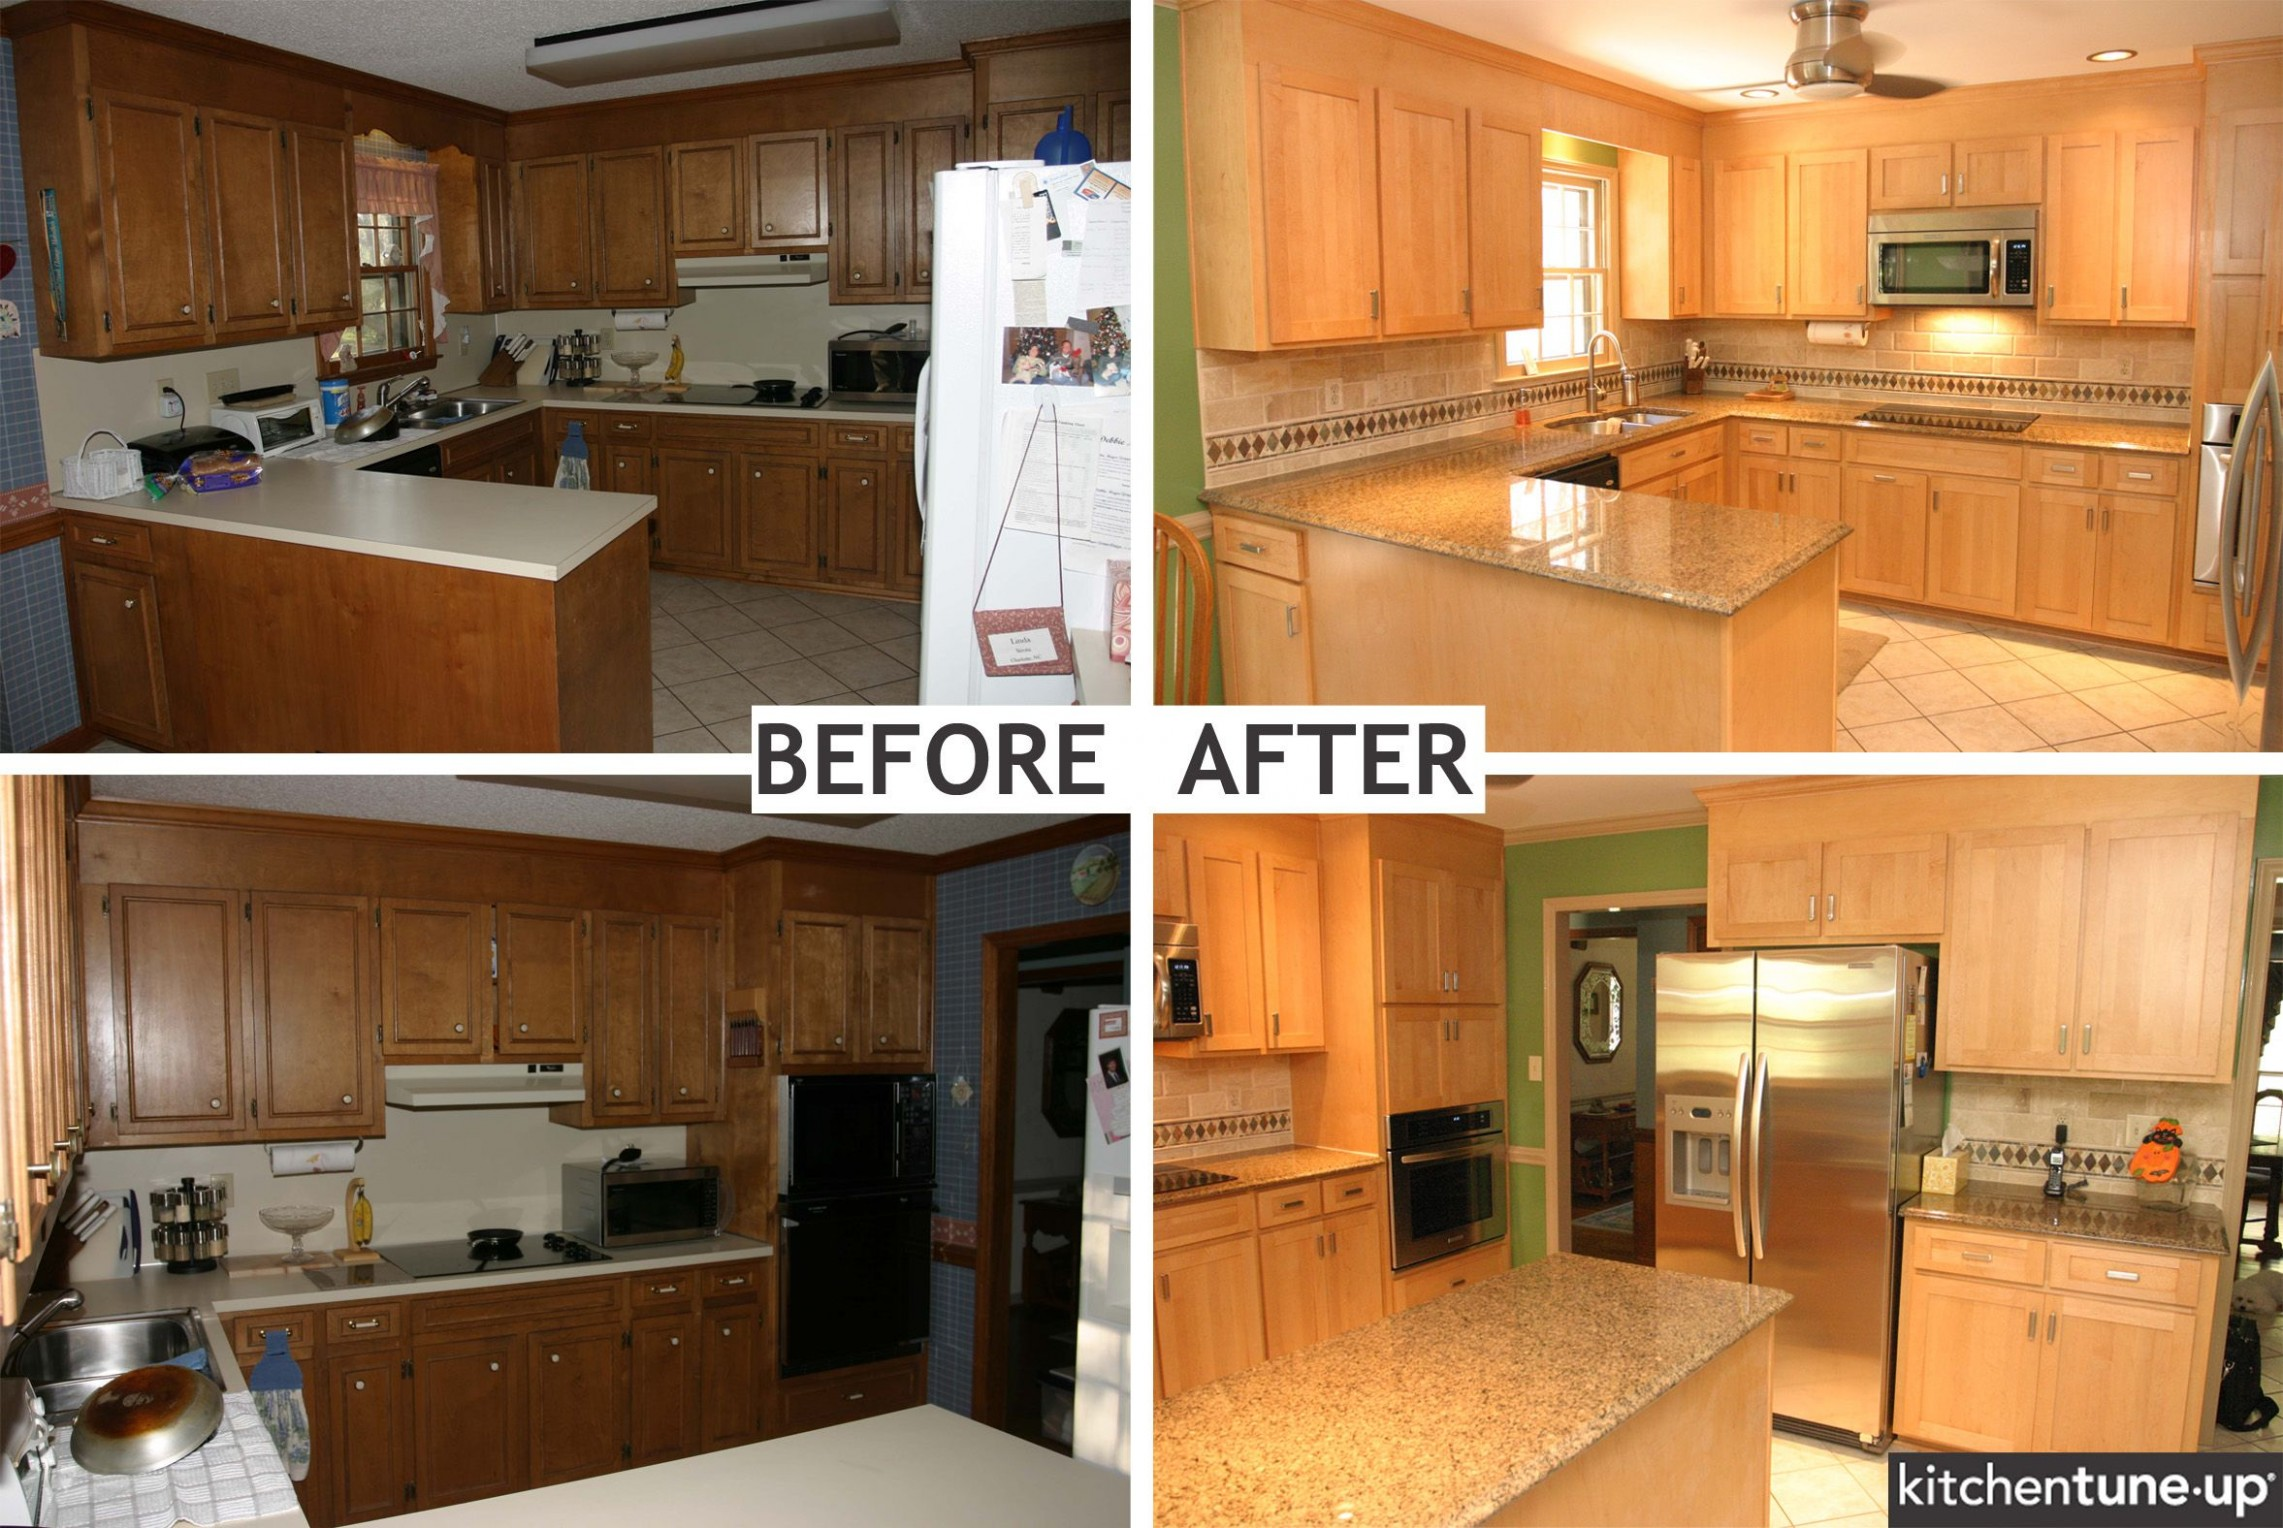 Average Cost To Reface Kitchen Cabinets Yourself Fireplace With  - Refacing Kitchen Cabinets Cost